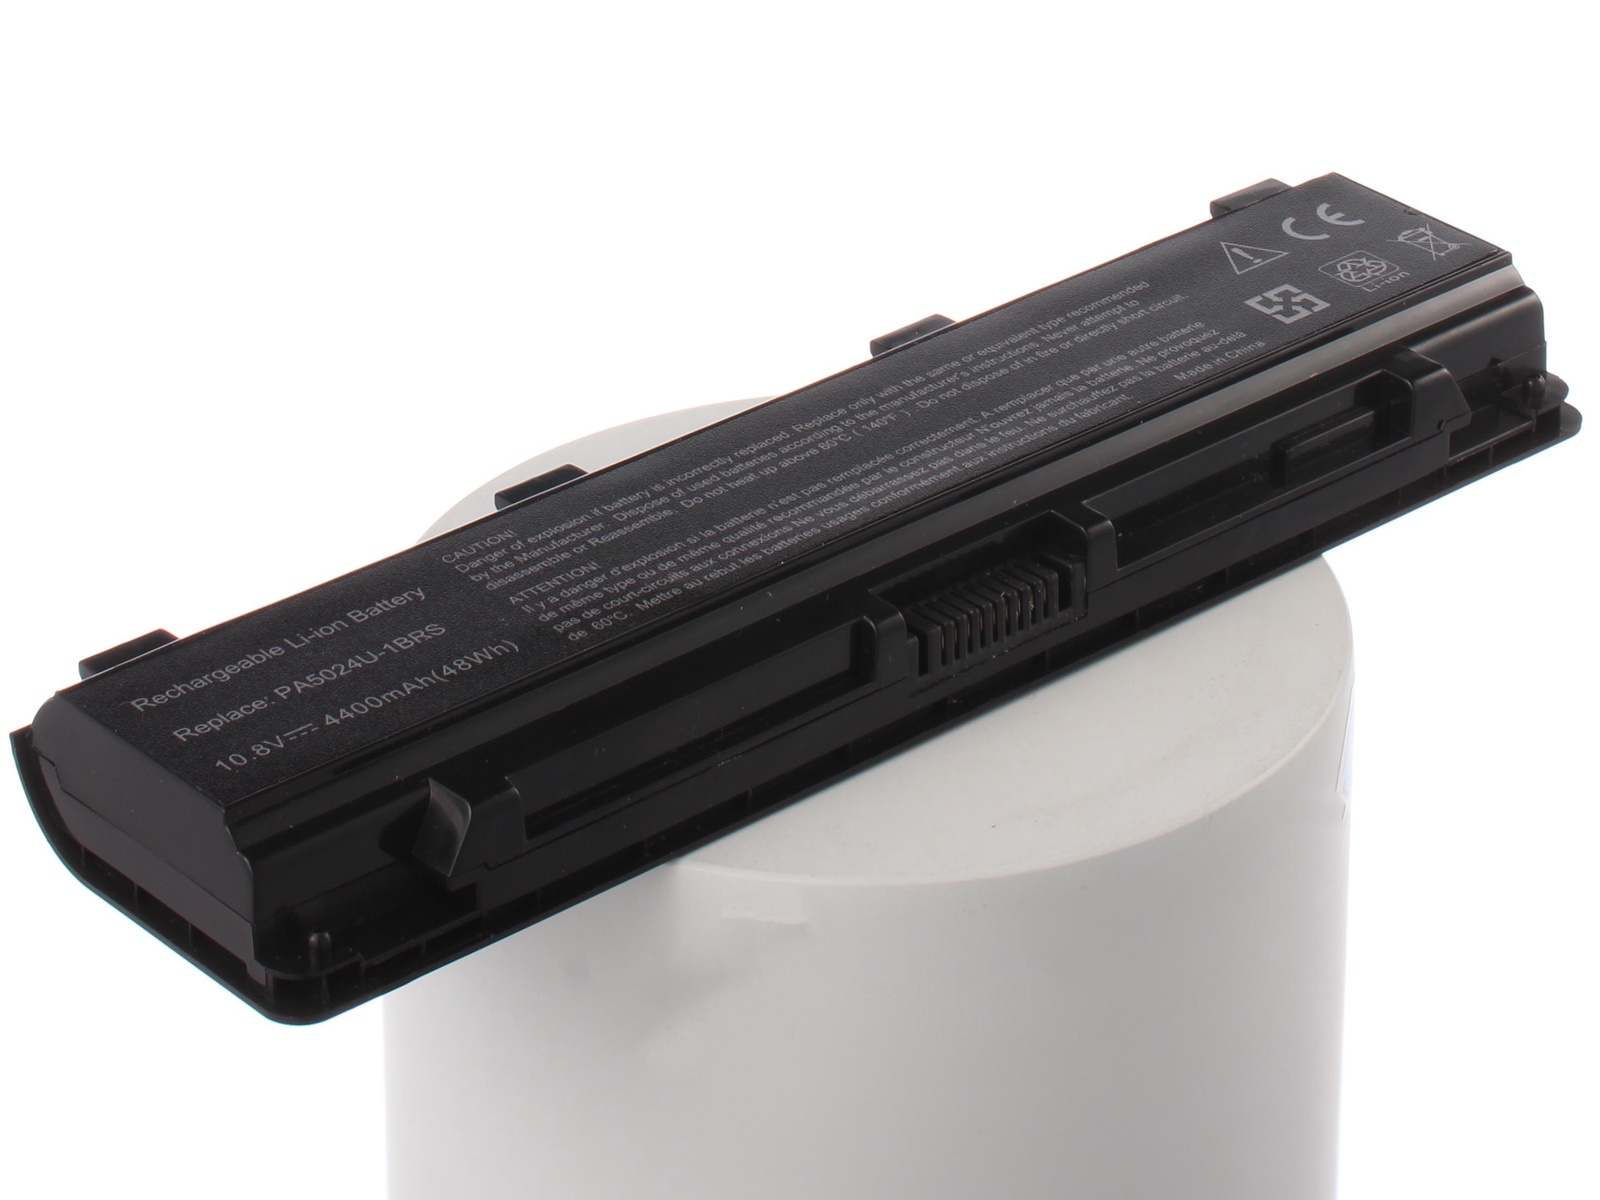 Аккумулятор для ноутбука AnyBatt для ToshiBa Satellite M840-B1P, Satellite P845-DAS, ToshiBa Satellite S70-A-K6M, Satellite C850D-C8K, M840-C1P, Satellite C870-CMK, Satellite M840-C1P, C850-BQK, Satellite C50-A-L3K pa3479 replacement high capacity laptop battery of 10 8v 5200mah for toshiba pa3479u pa3479u1bas satellite p100 p105 6cell black